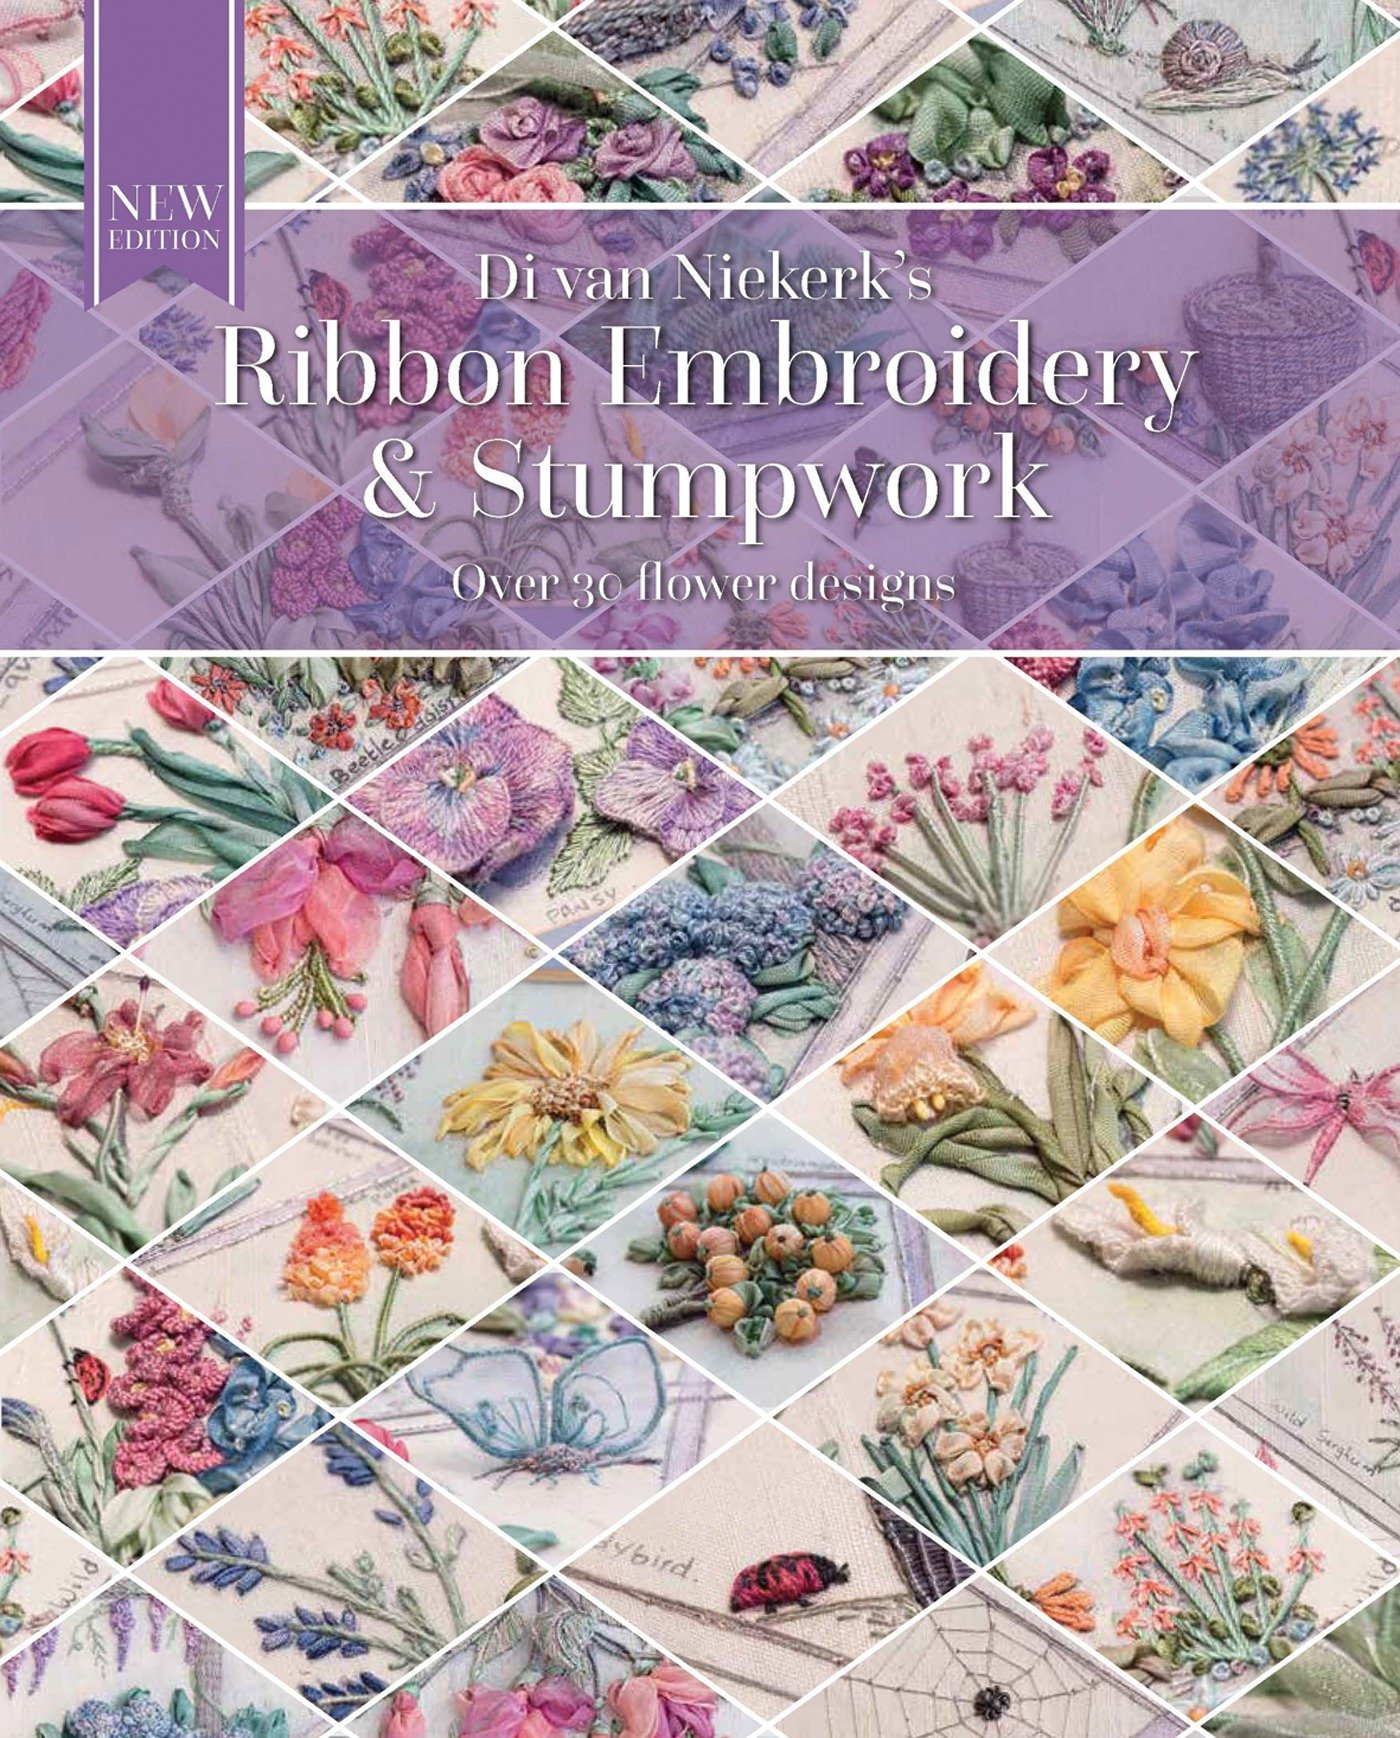 Ribbon Embroidery and Stumpwork: Over 30 flower designs